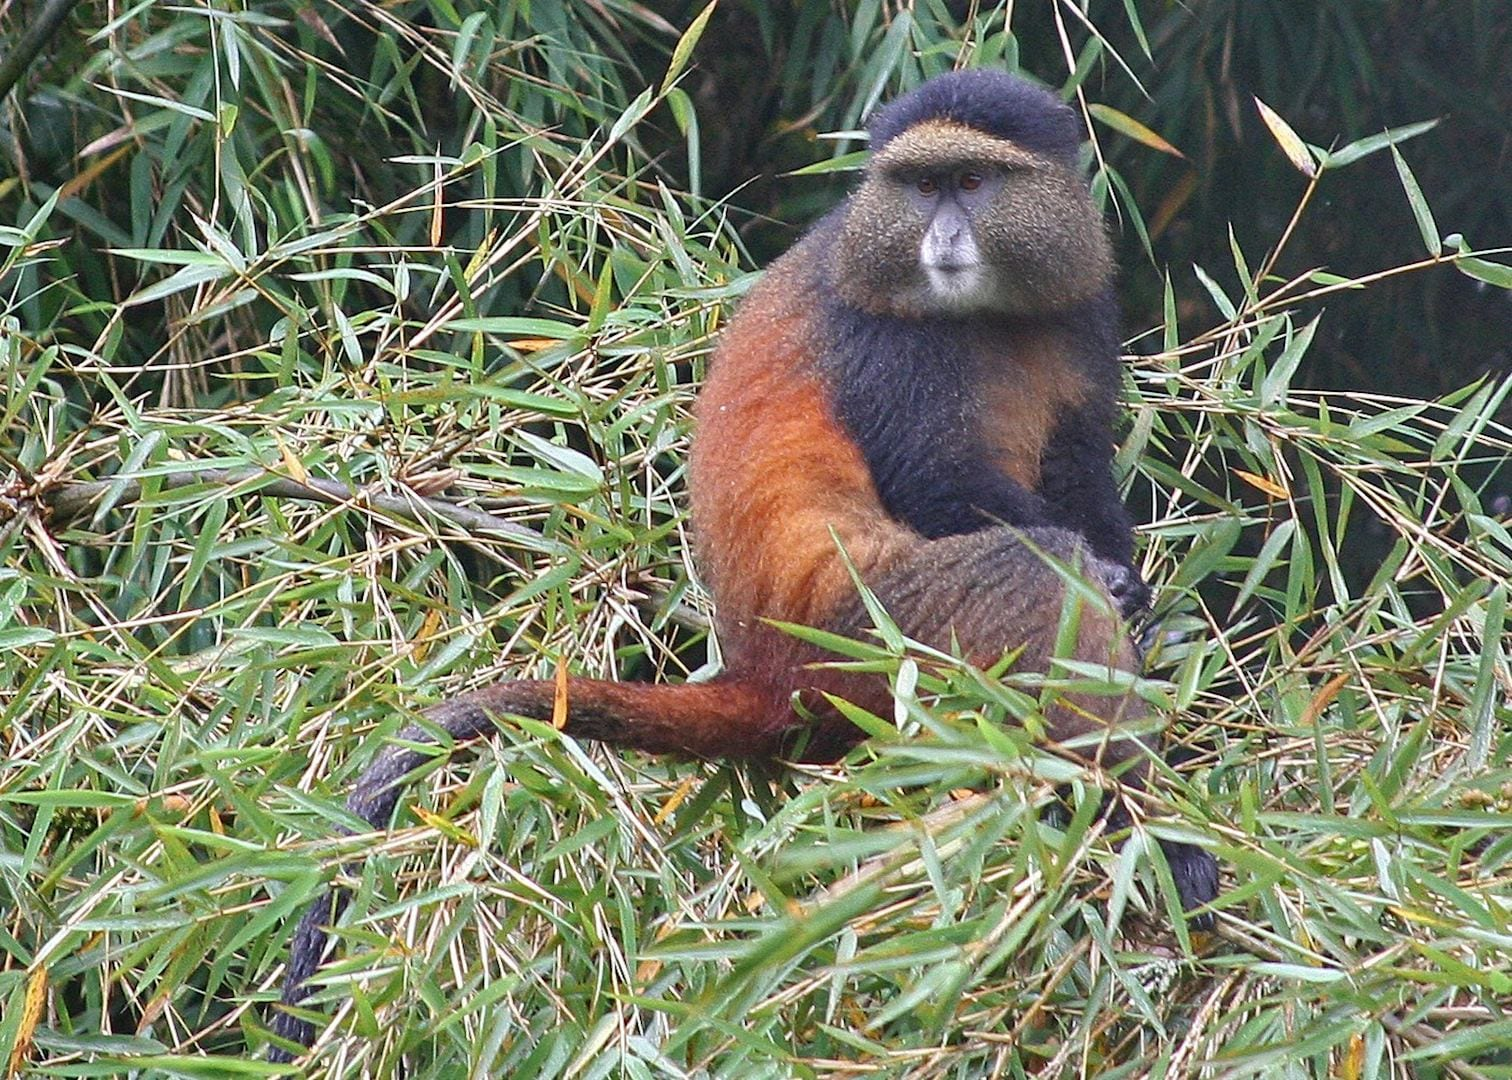 Golden monkey trek in Volcanoes national park